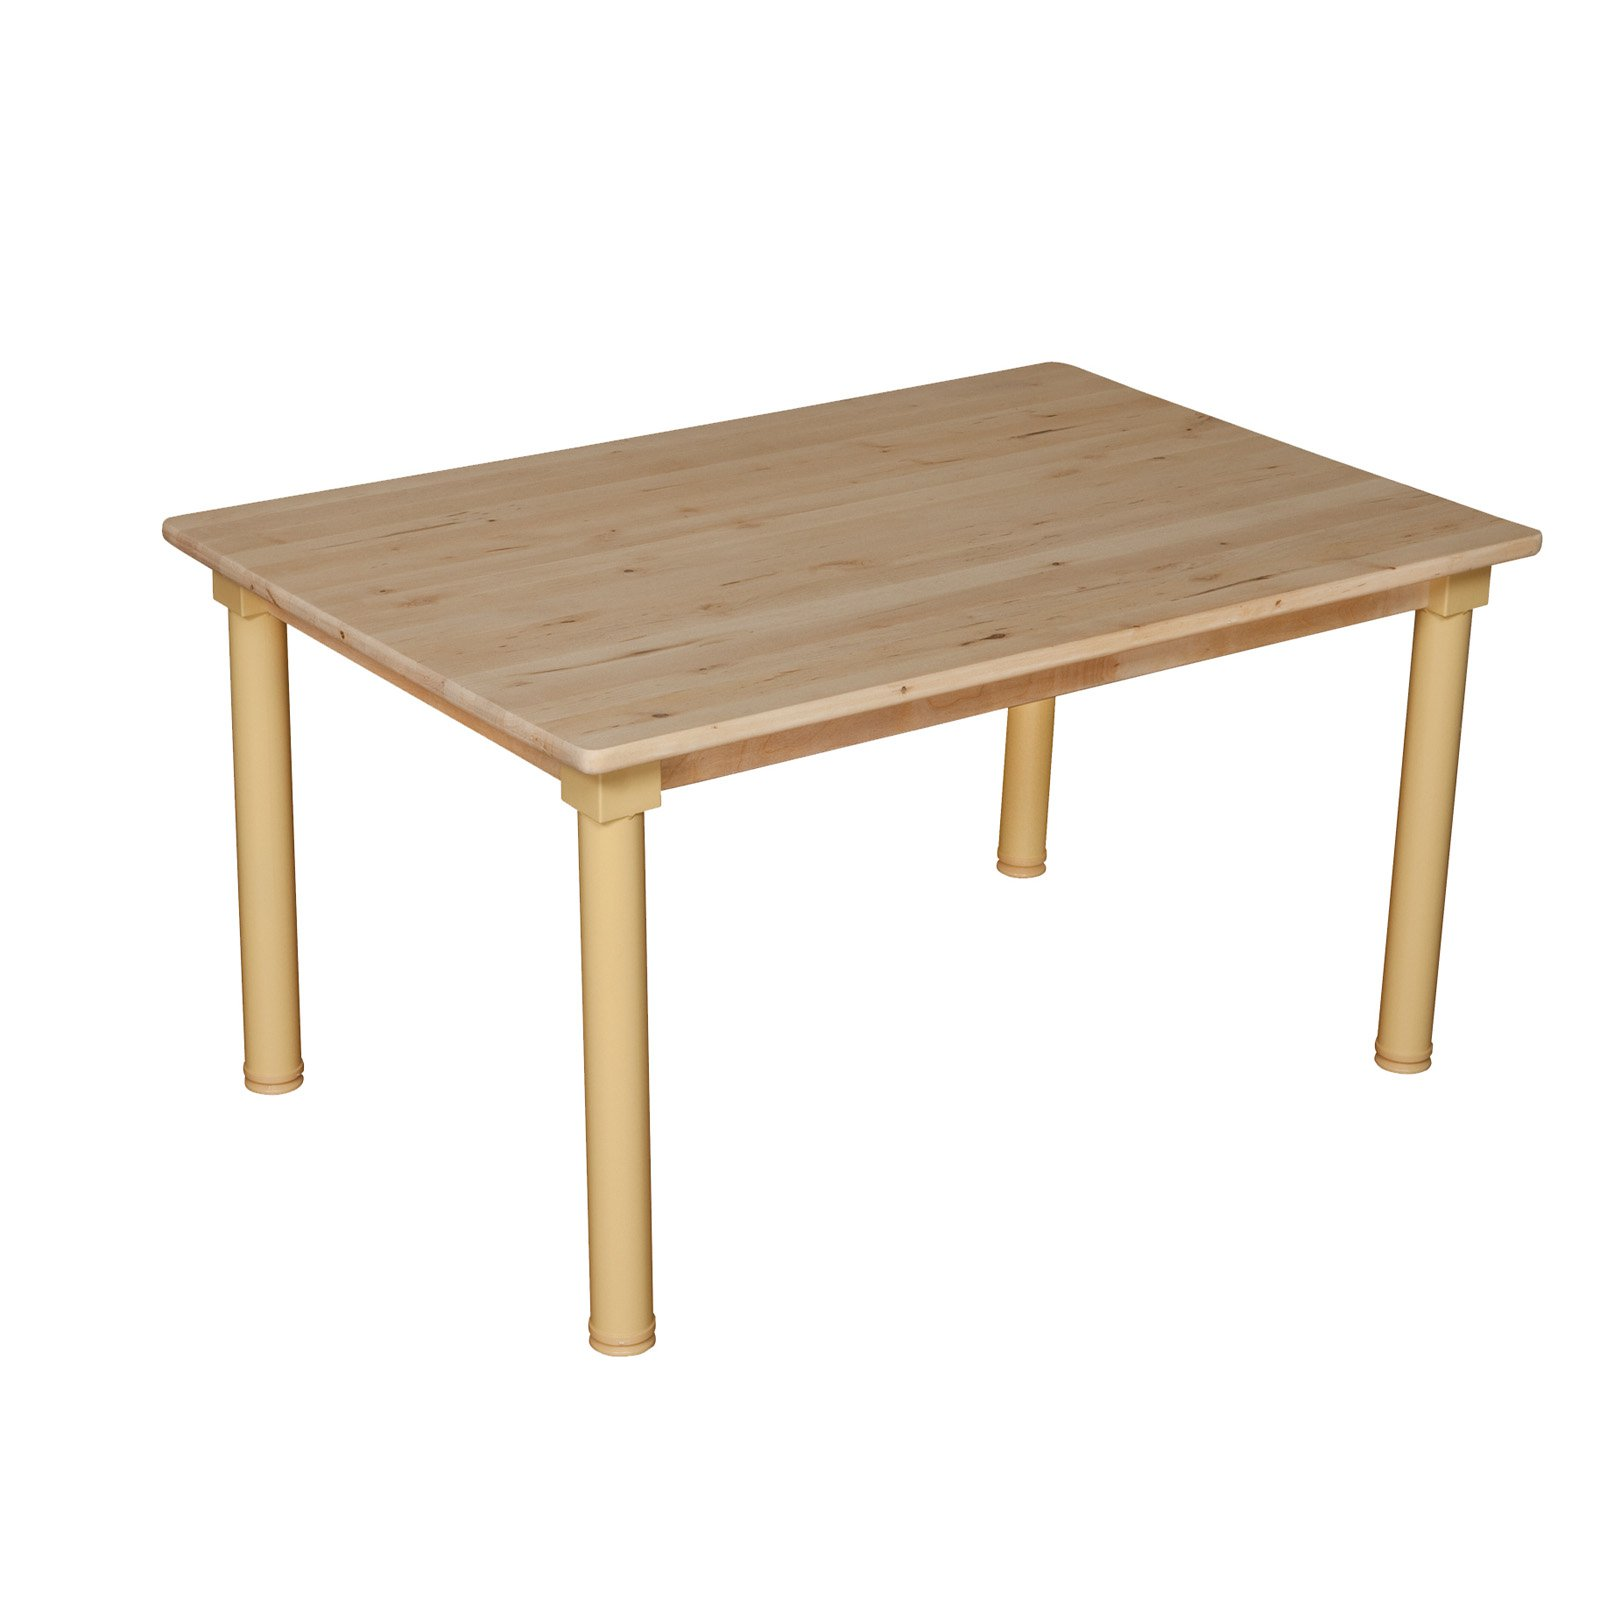 Wood Designs Rectangle 24 x 48 in. Adjustable Table